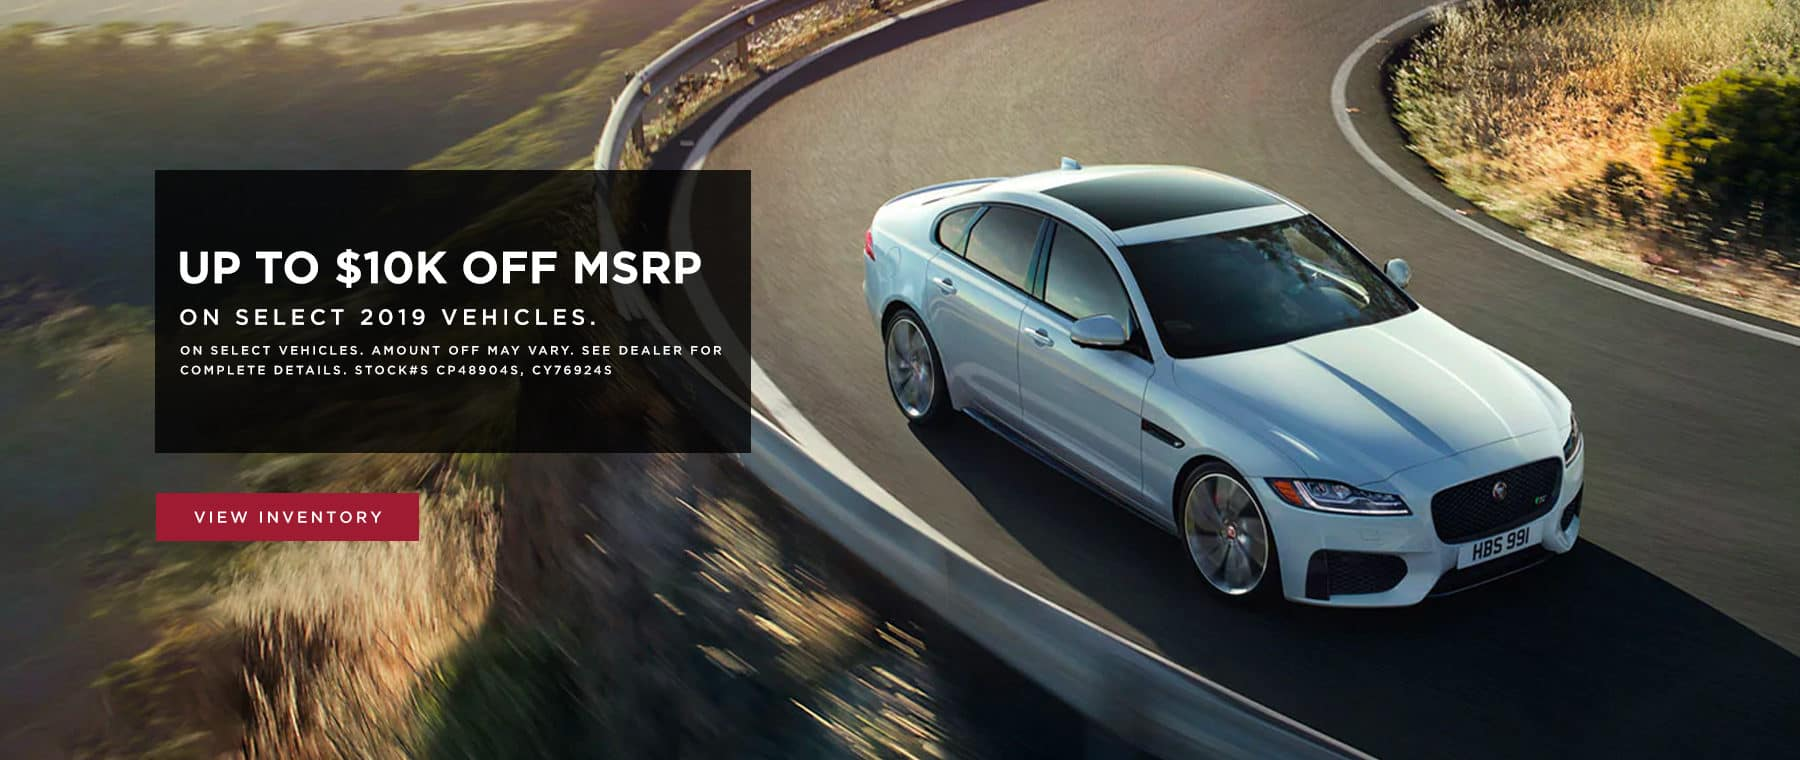 Up to $10K off MSRP